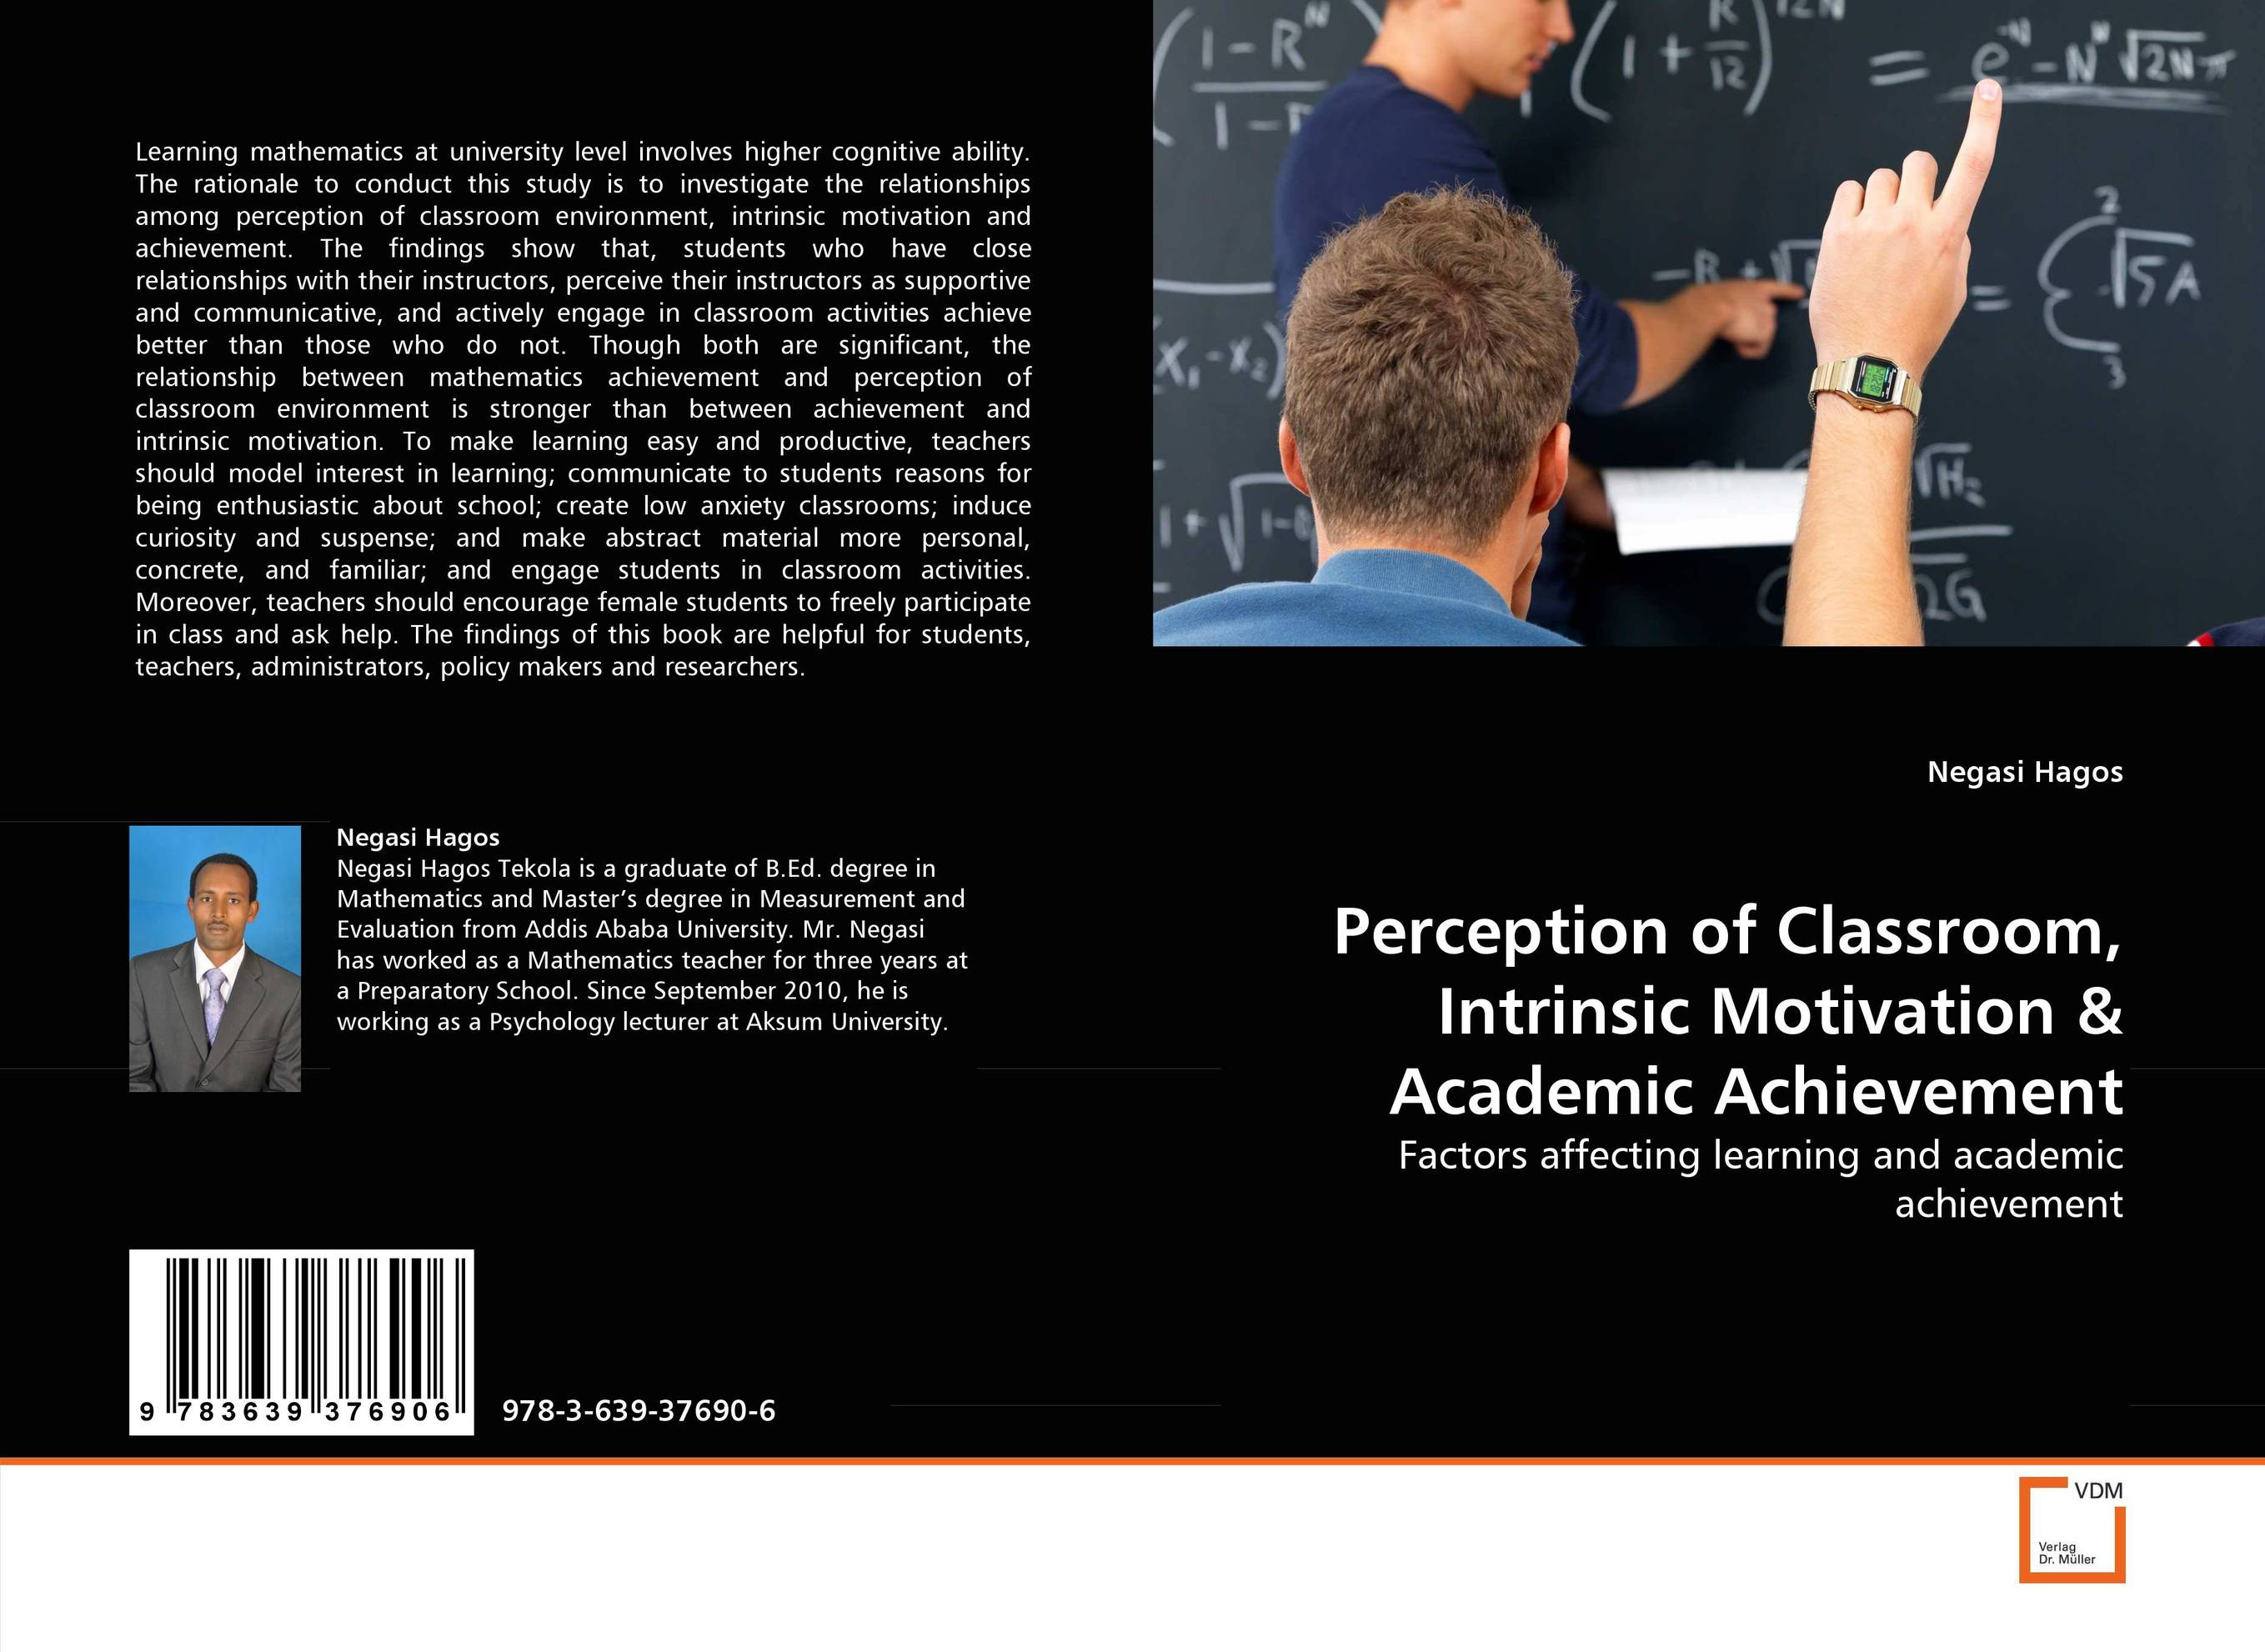 Perception of Classroom, Intrinsic Motivation & Academic Achievement mick johnson motivation is at